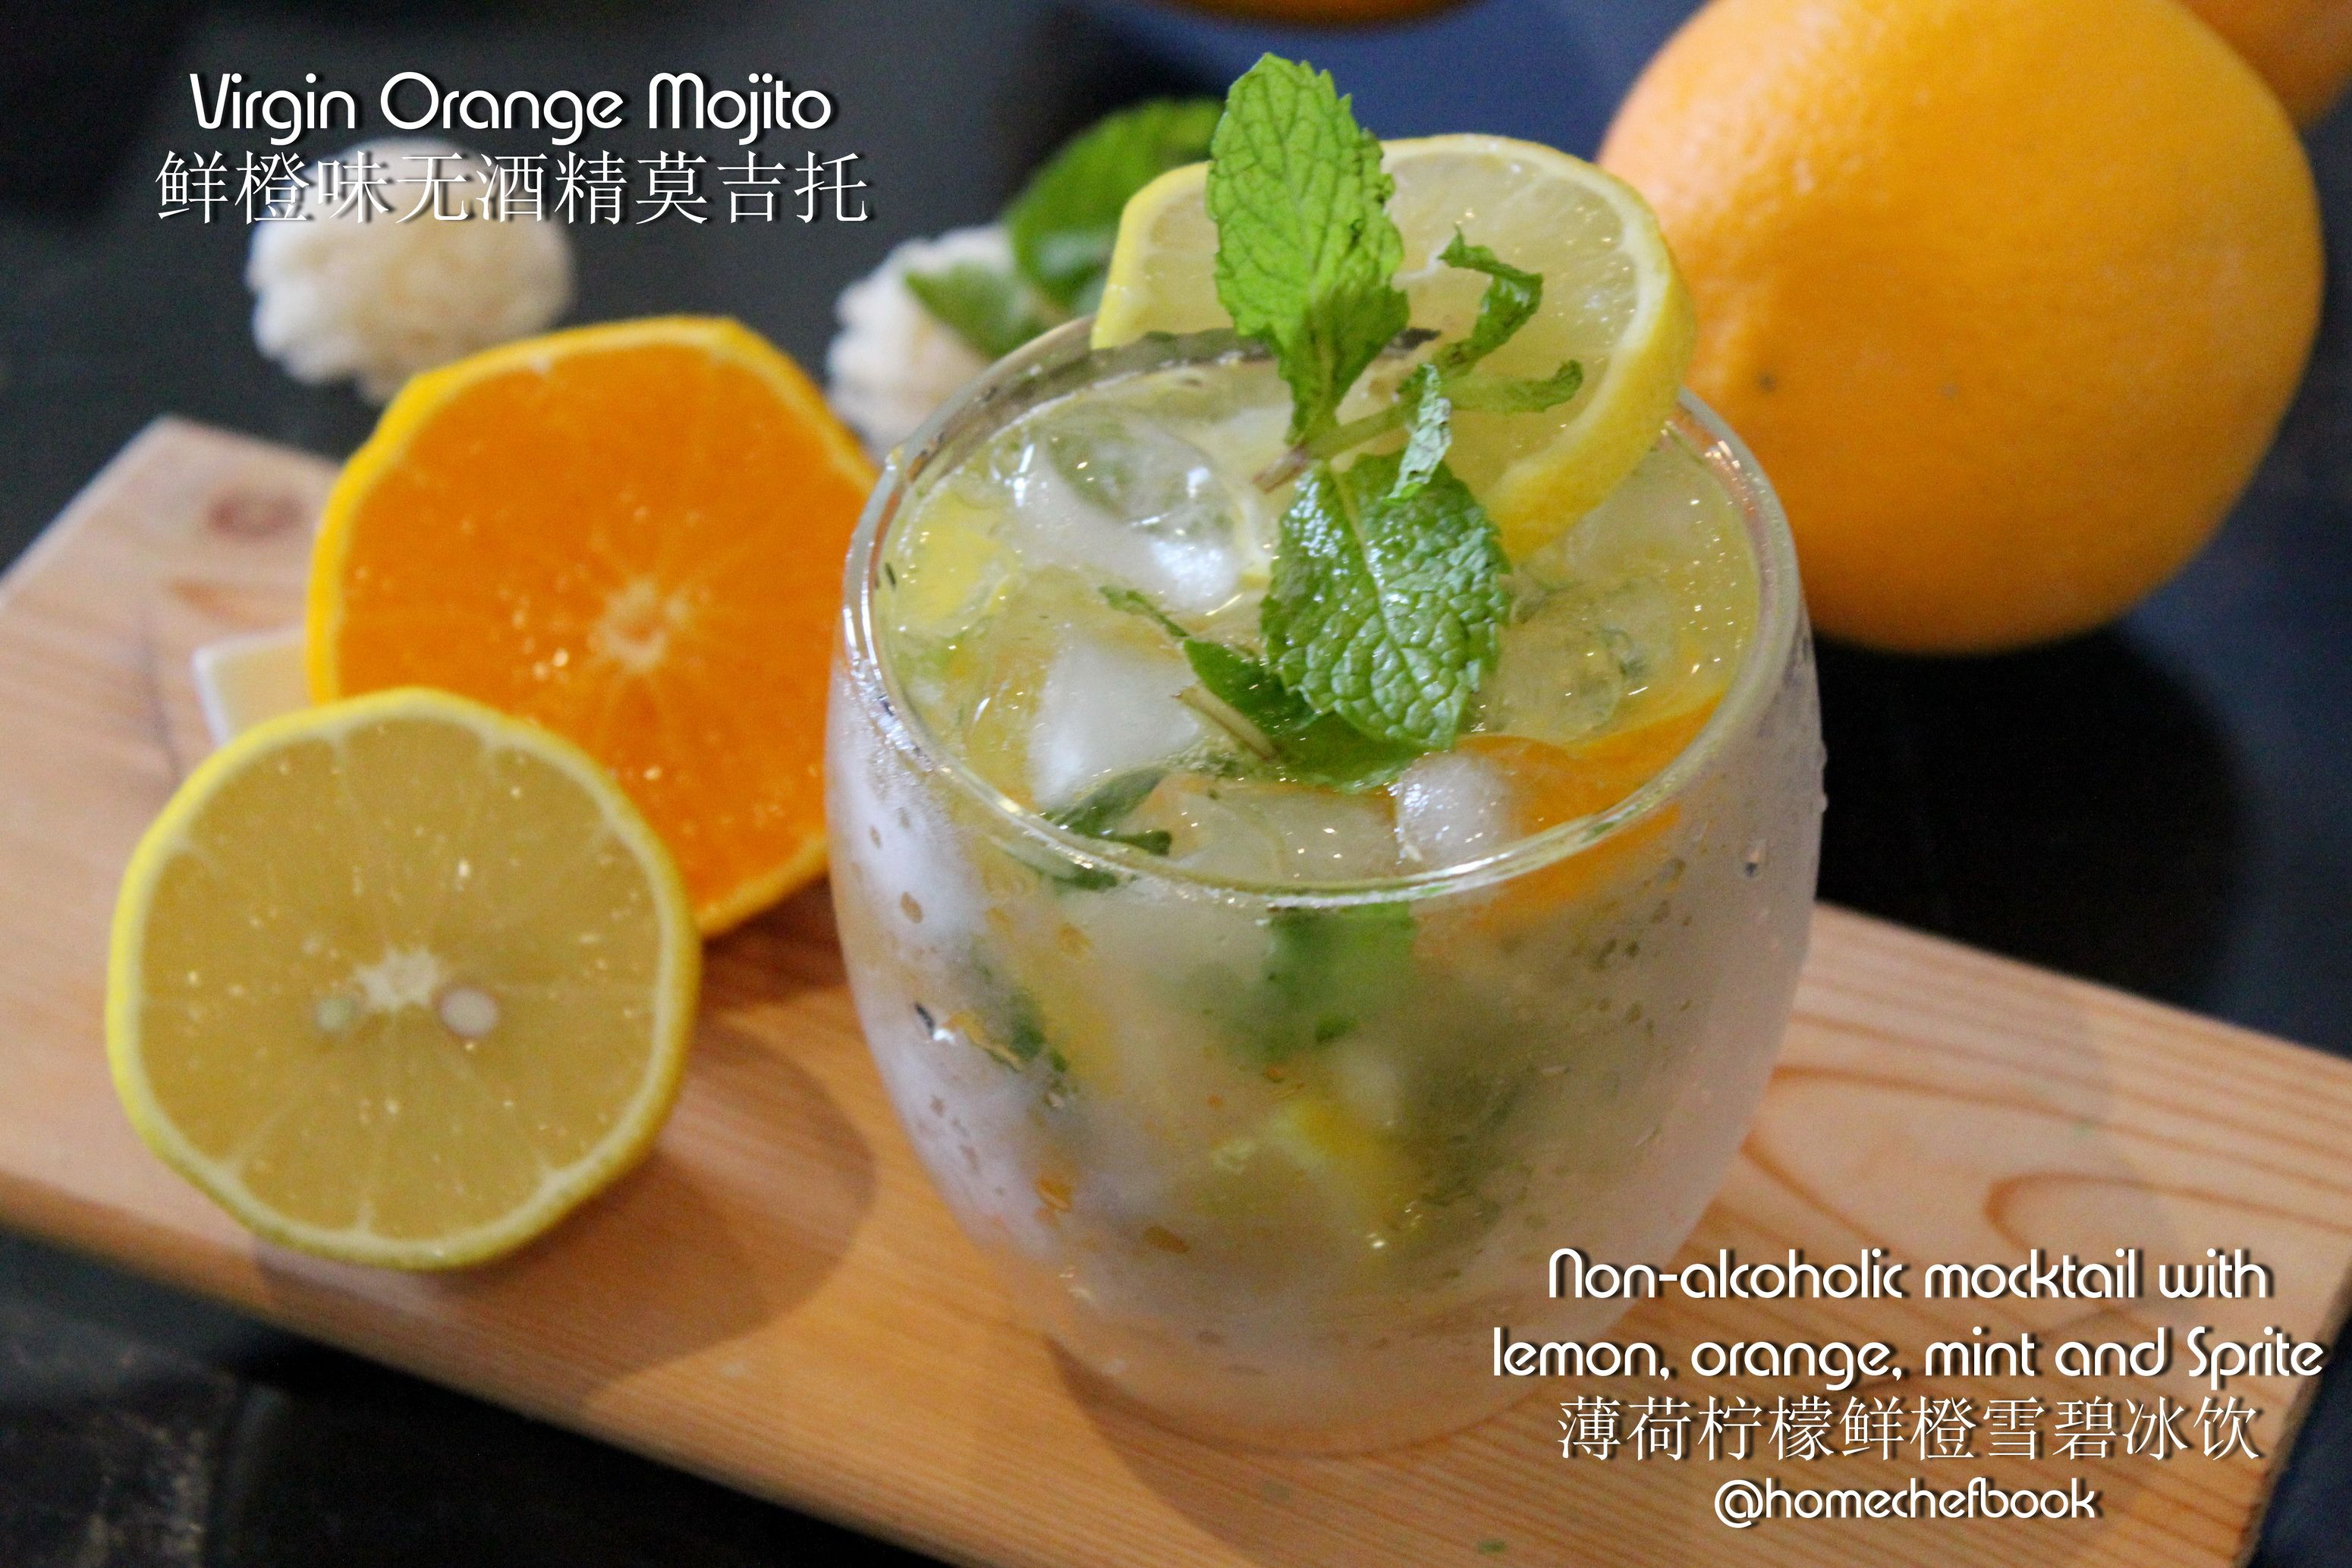 Virgin Orange Mojito 鮮橙味無酒精莫吉托 Beat the heat with this cool, sweet, tangy, refreshing mocktail…. A non-alcoholic mocktail with ...